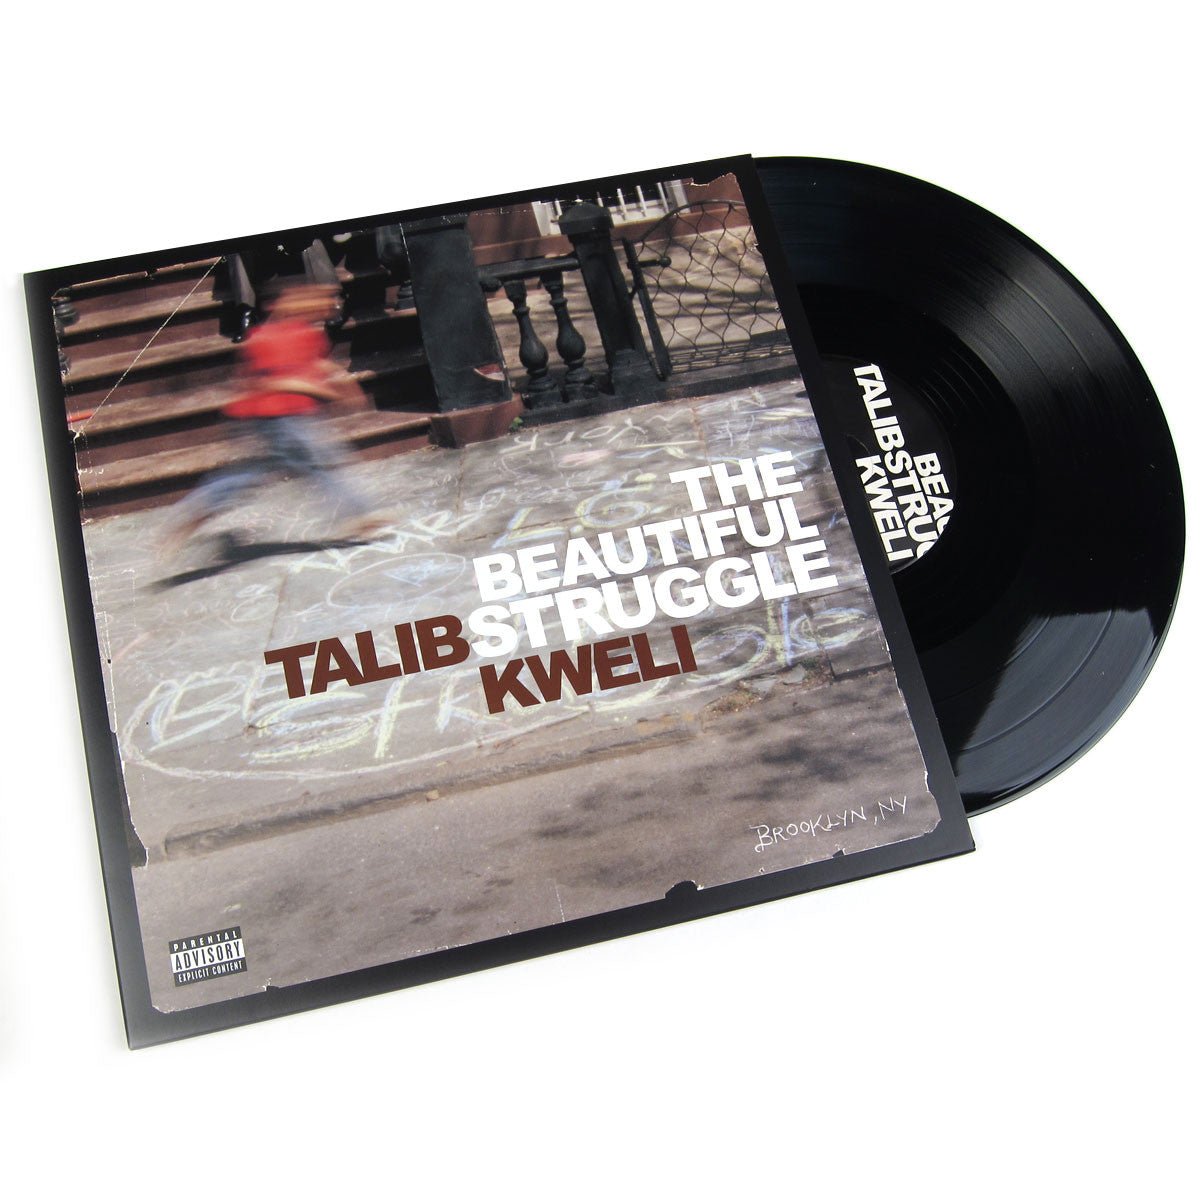 Talib Kweli: The Beautiful Struggle Vinyl 2LP